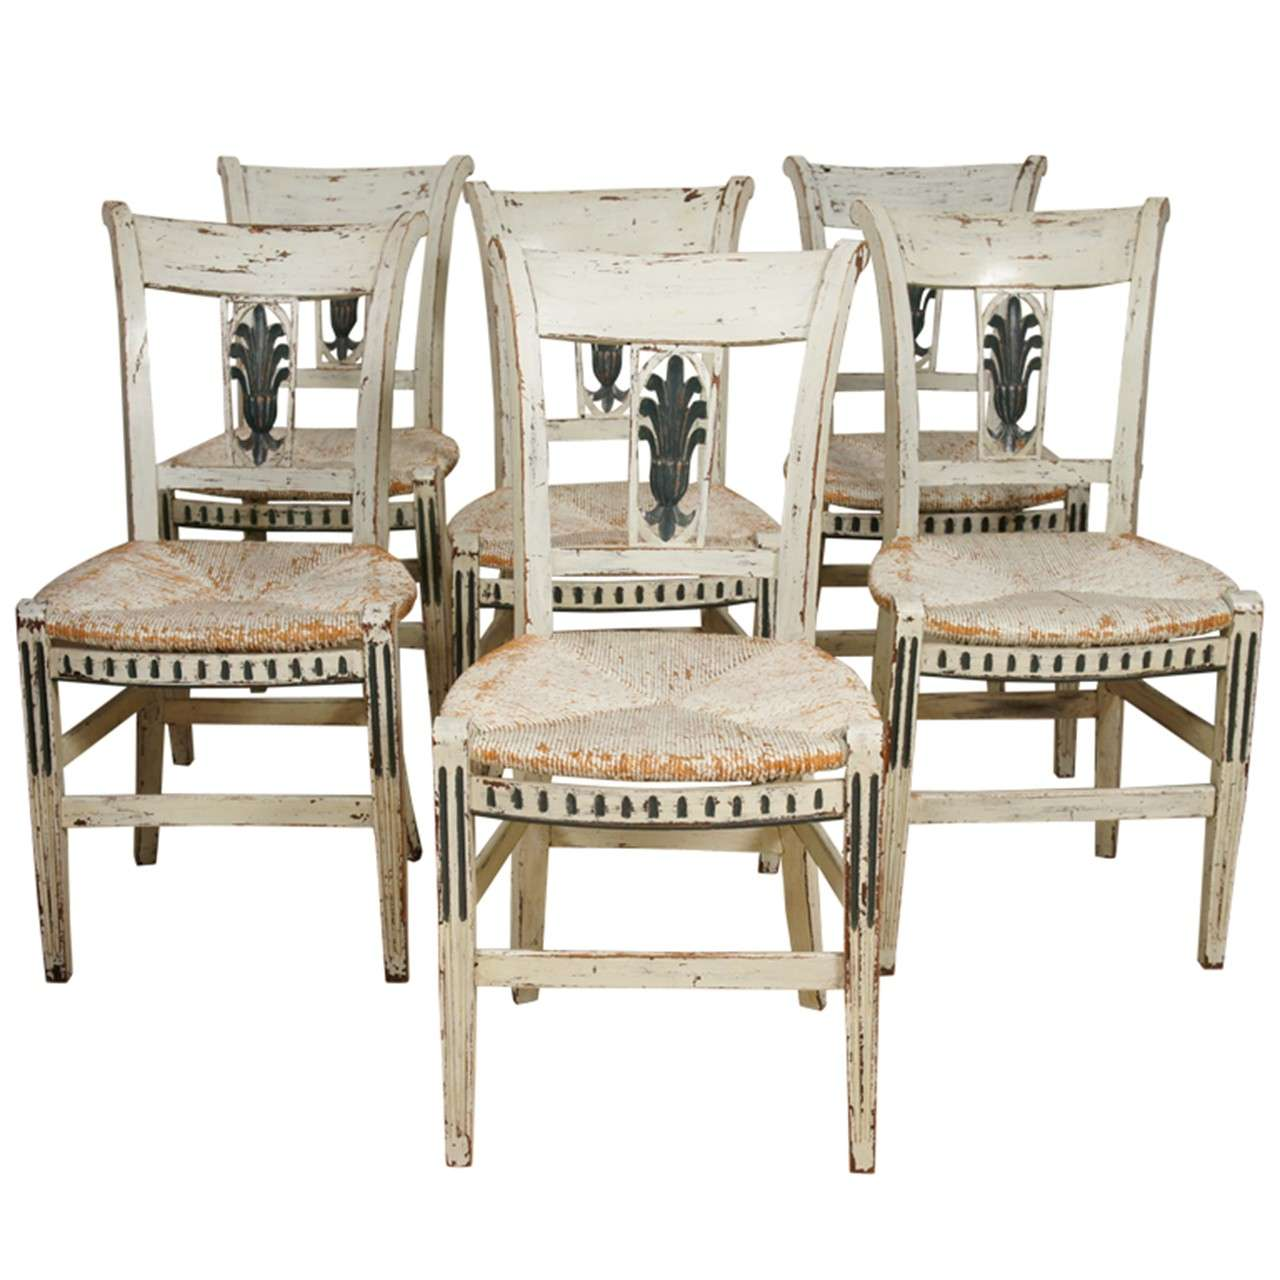 8 French Provincial Green Painted Dining Room Chairs For Sale